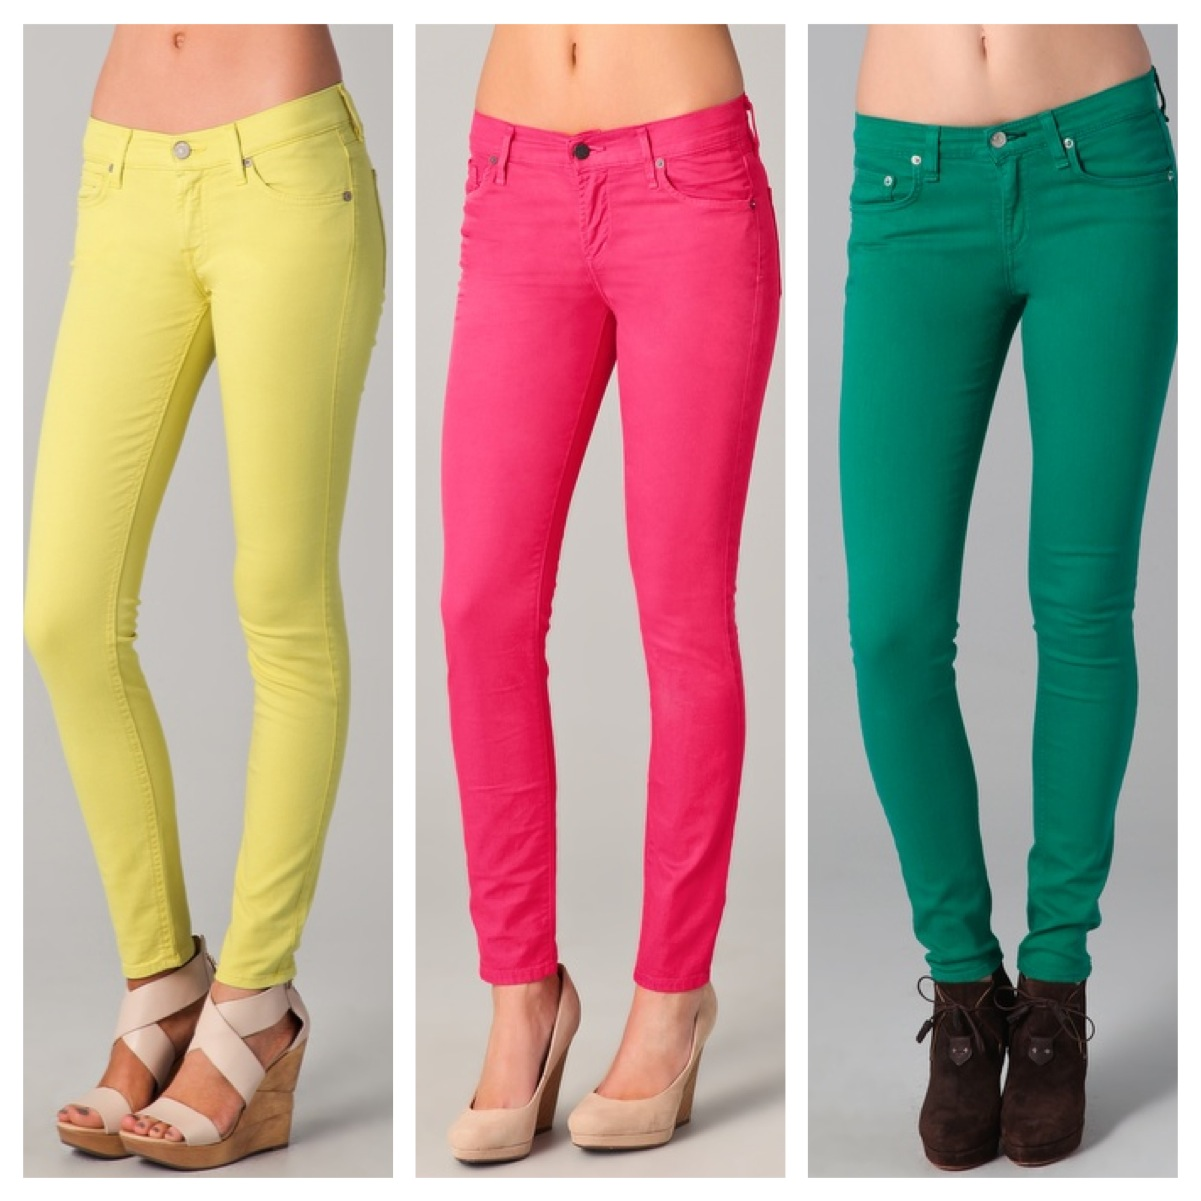 Green jeans for women – Global fashion jeans models